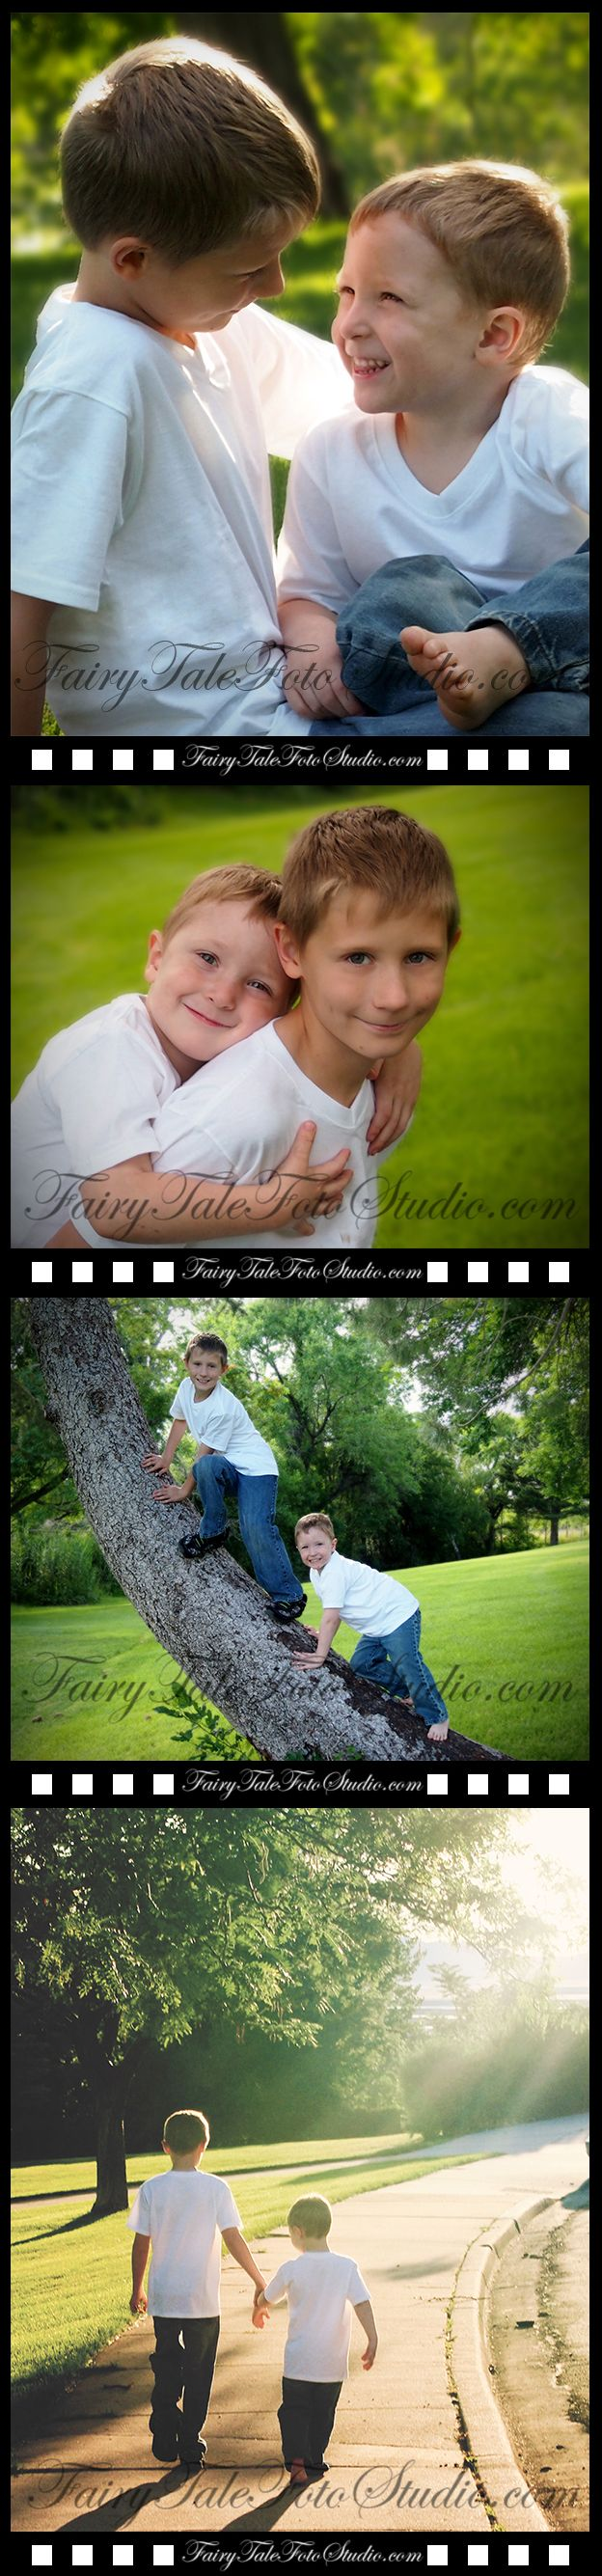 Brothers | Outdoor Sibling Photo Shoot | 9 and 4 Year Old Boys at a Park | Portrait Poses | Photo Idea | Photography | Cute Kid Pic | Baby Pics | Posing Ideas | Kids | Children | Child | ~Bountiful Utah Photographer